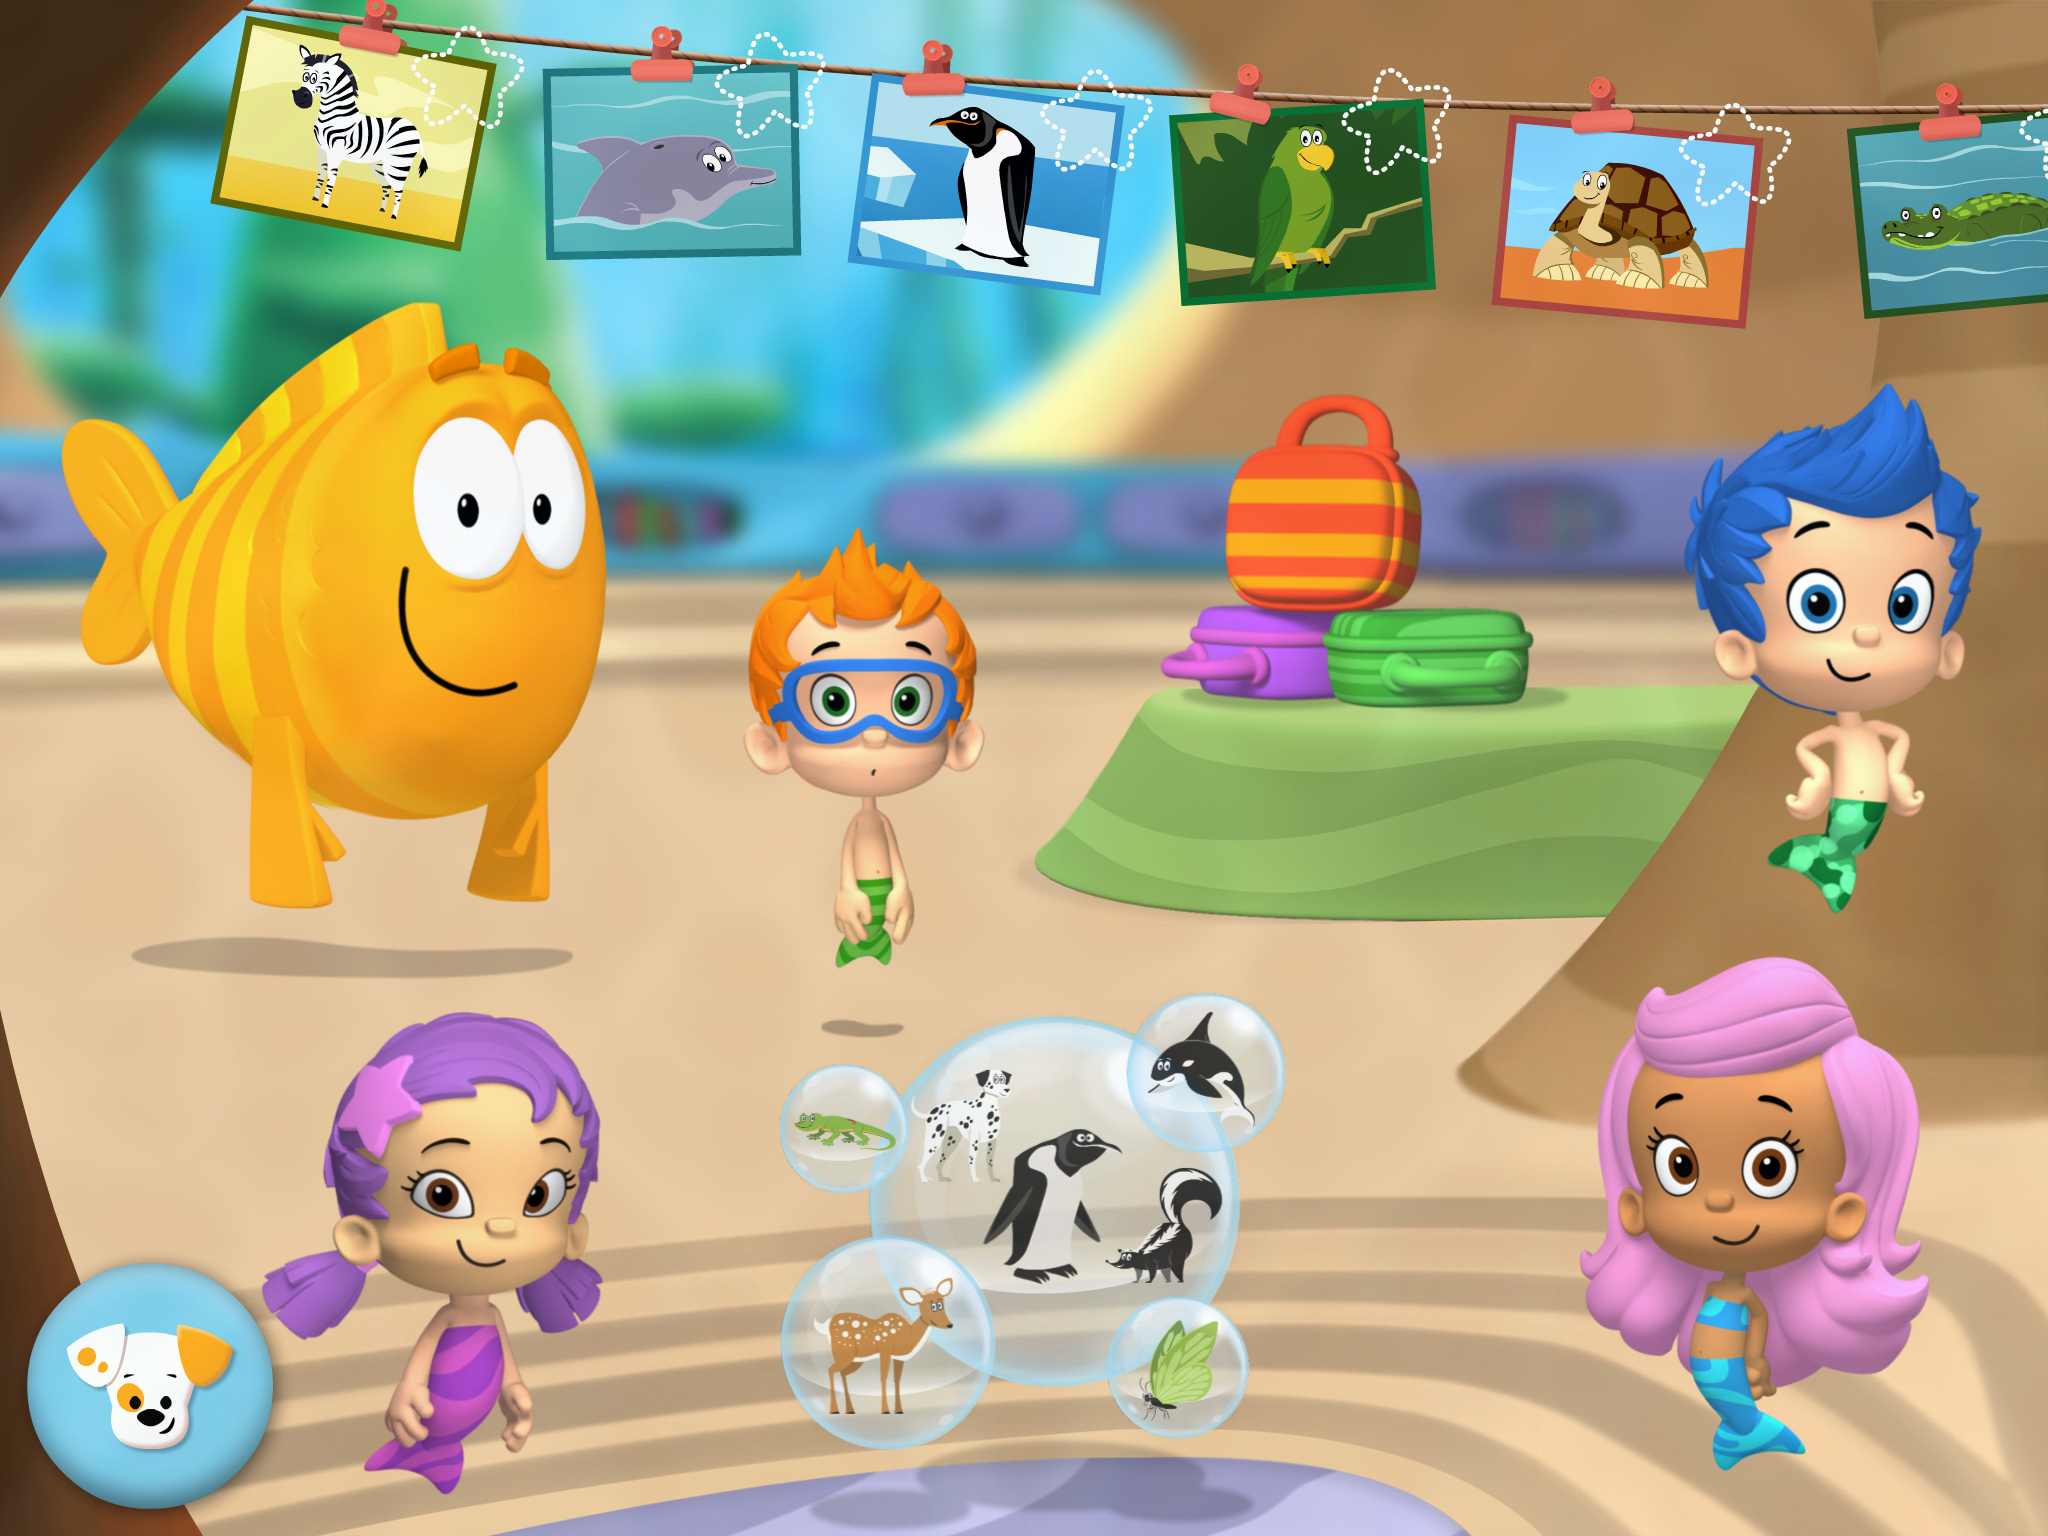 Bubble guppies animal school day app bb product reviews - Bubulles guppies ...